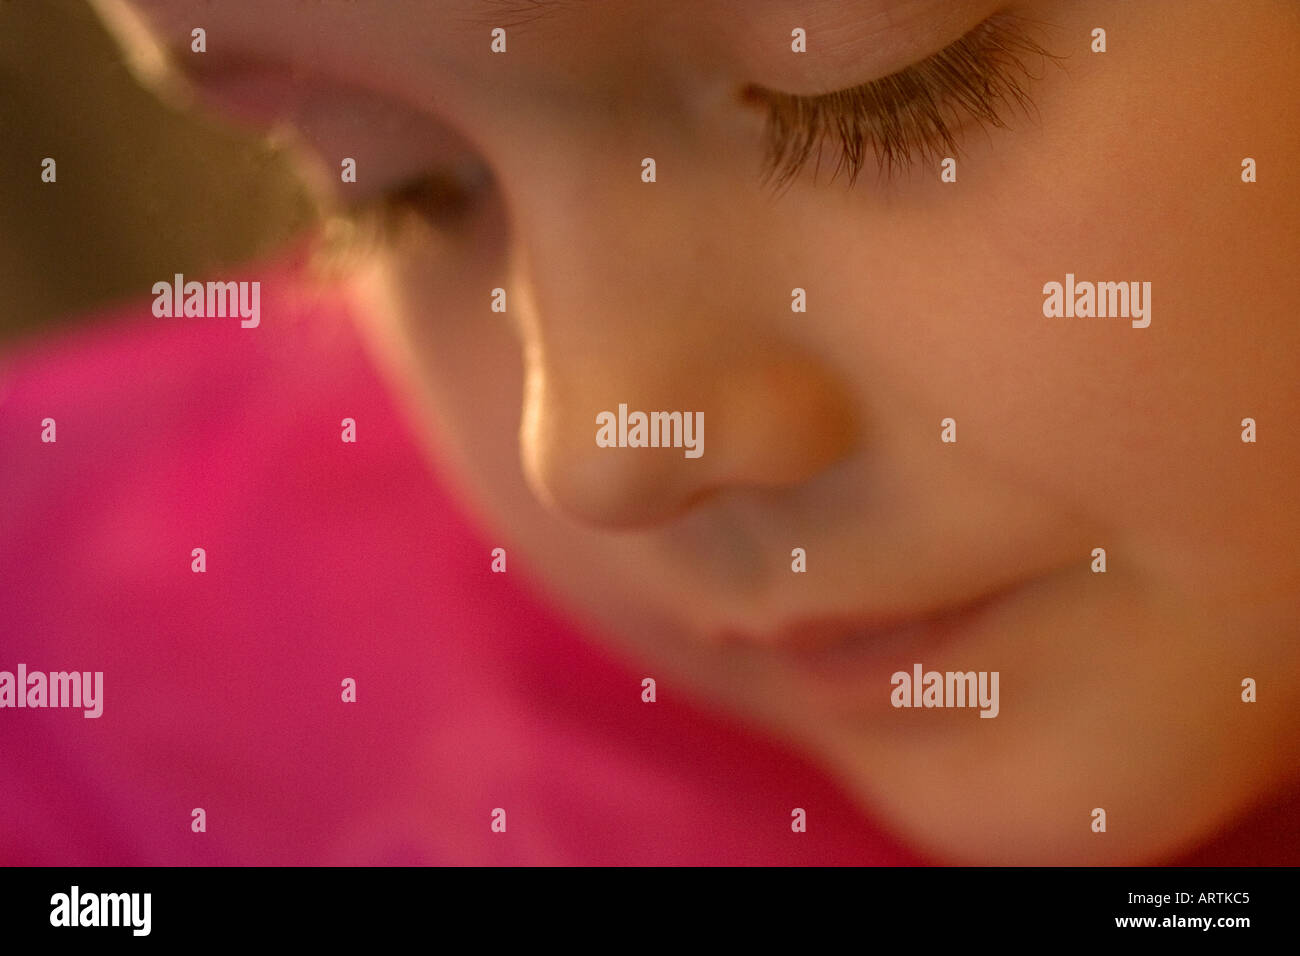 Close up of a young caucasian girl's face contemplating and looking angelic - Stock Image